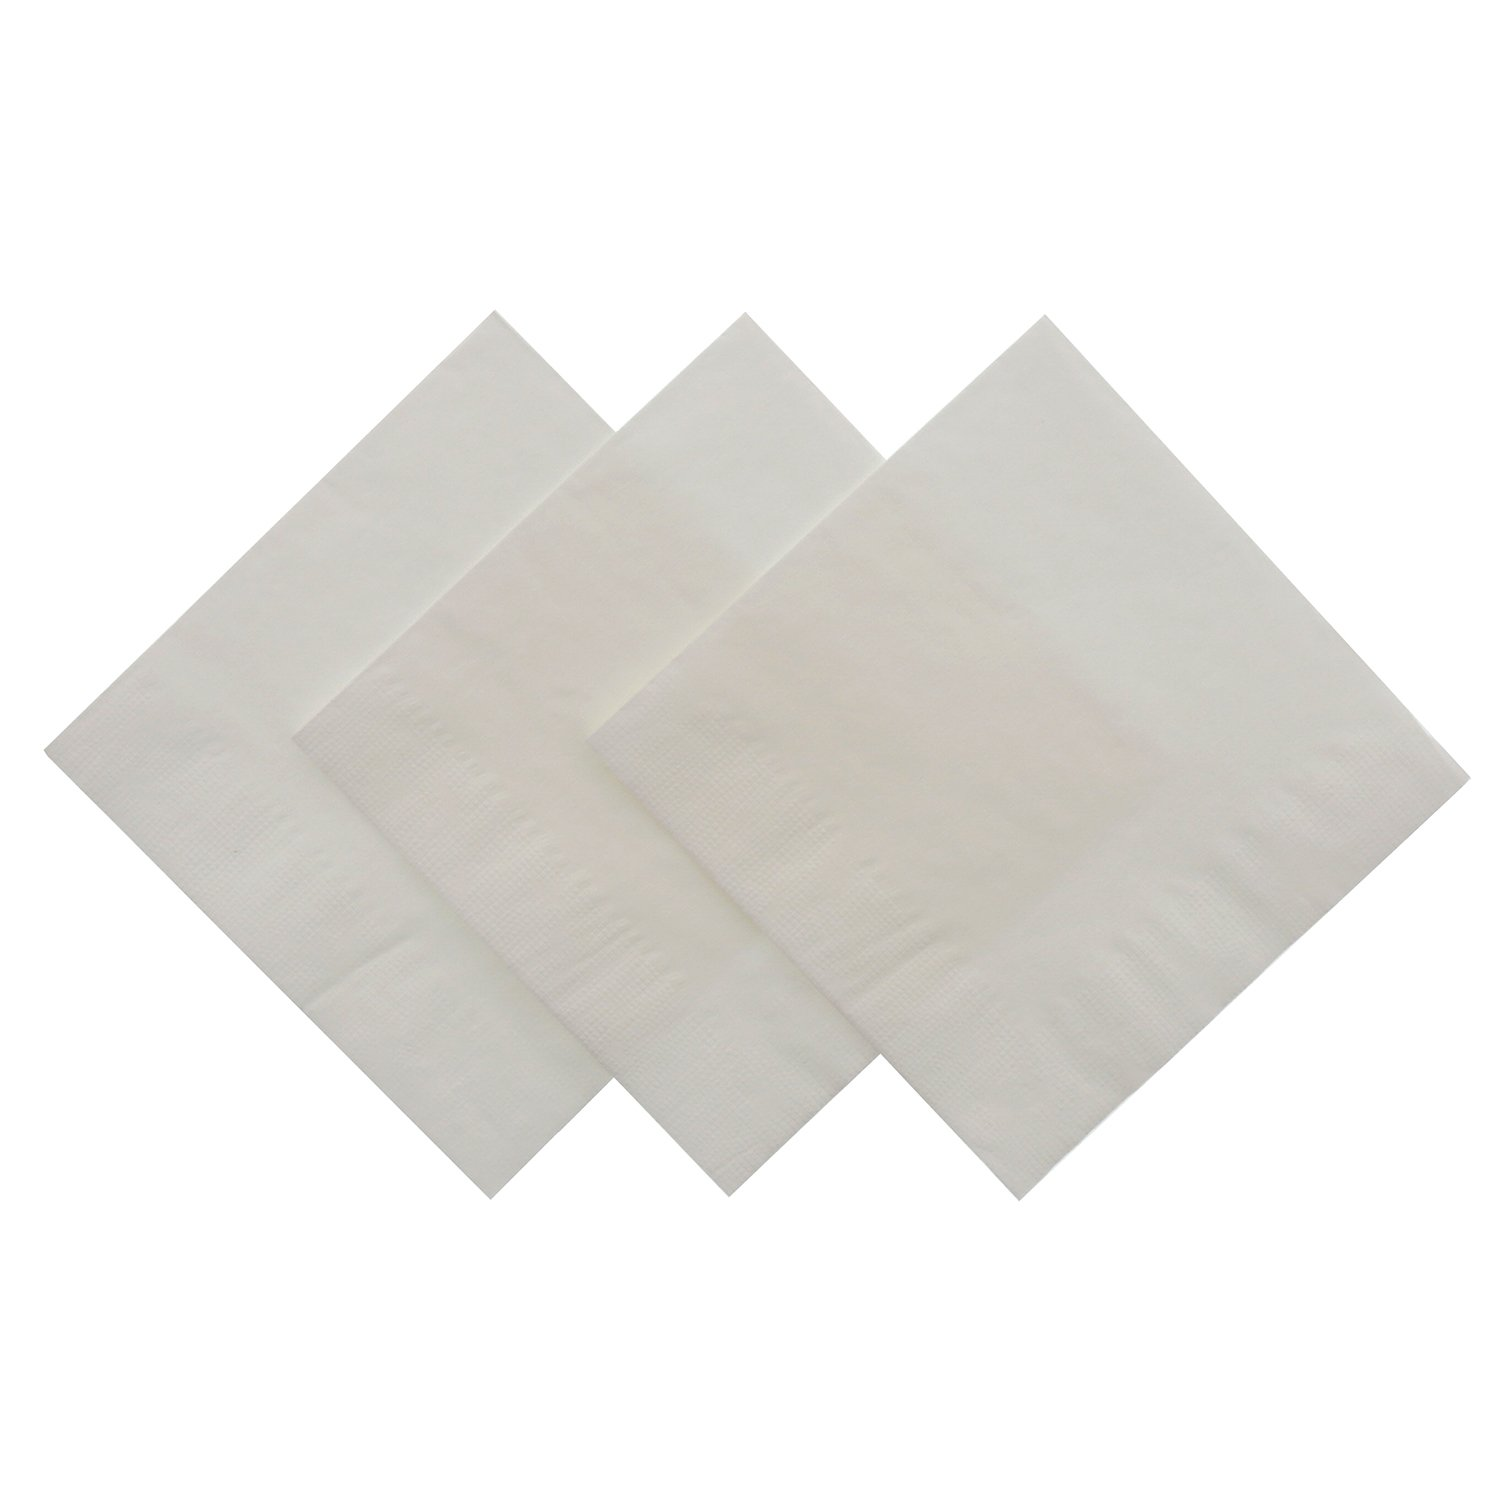 Royal White Beverage Napkin, Package of 1000